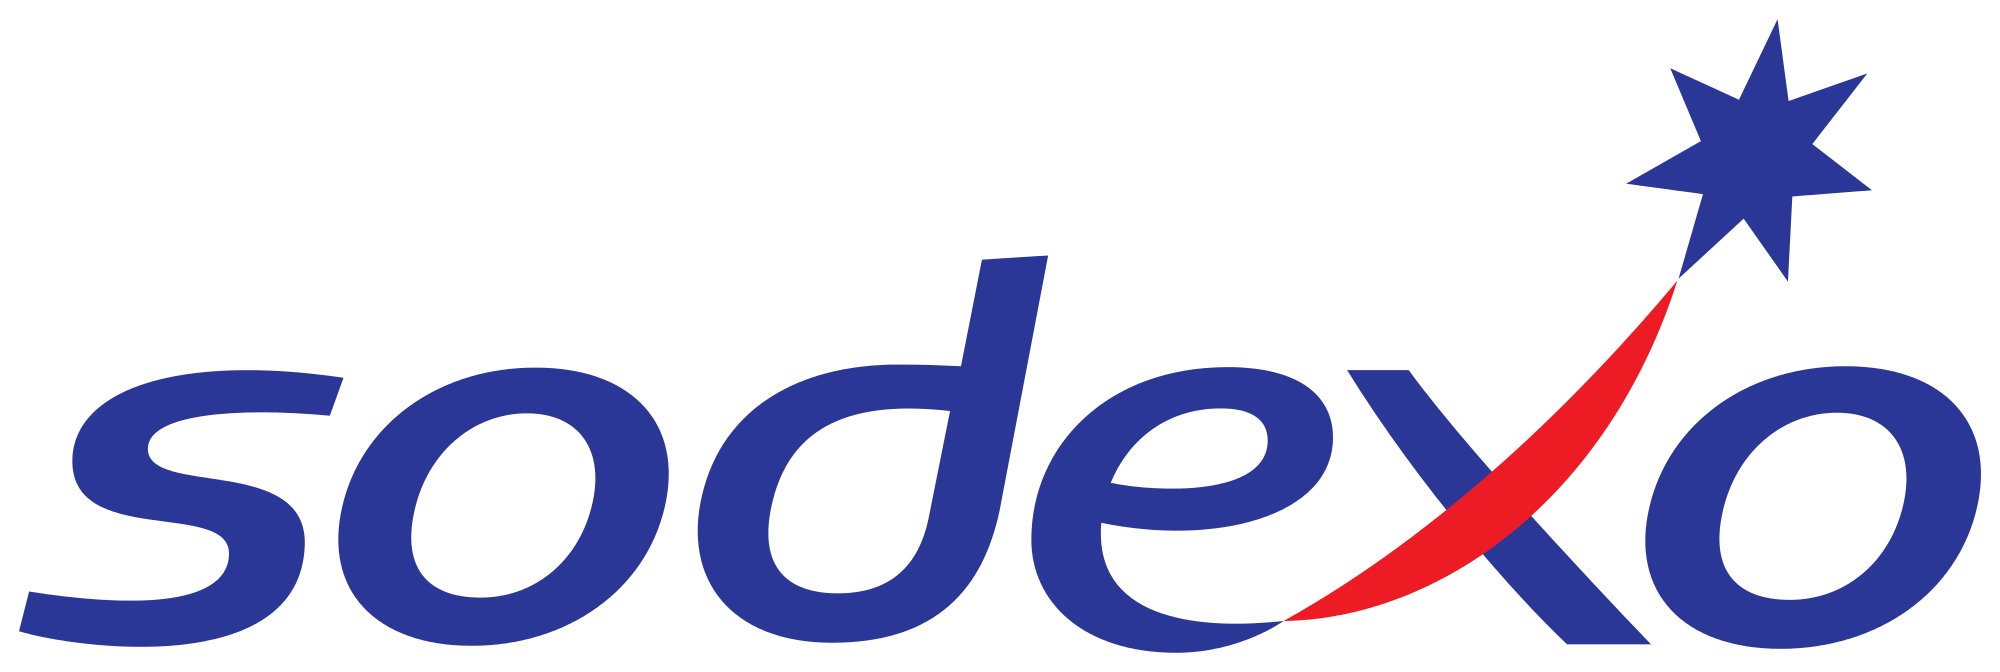 We accept Sodexo